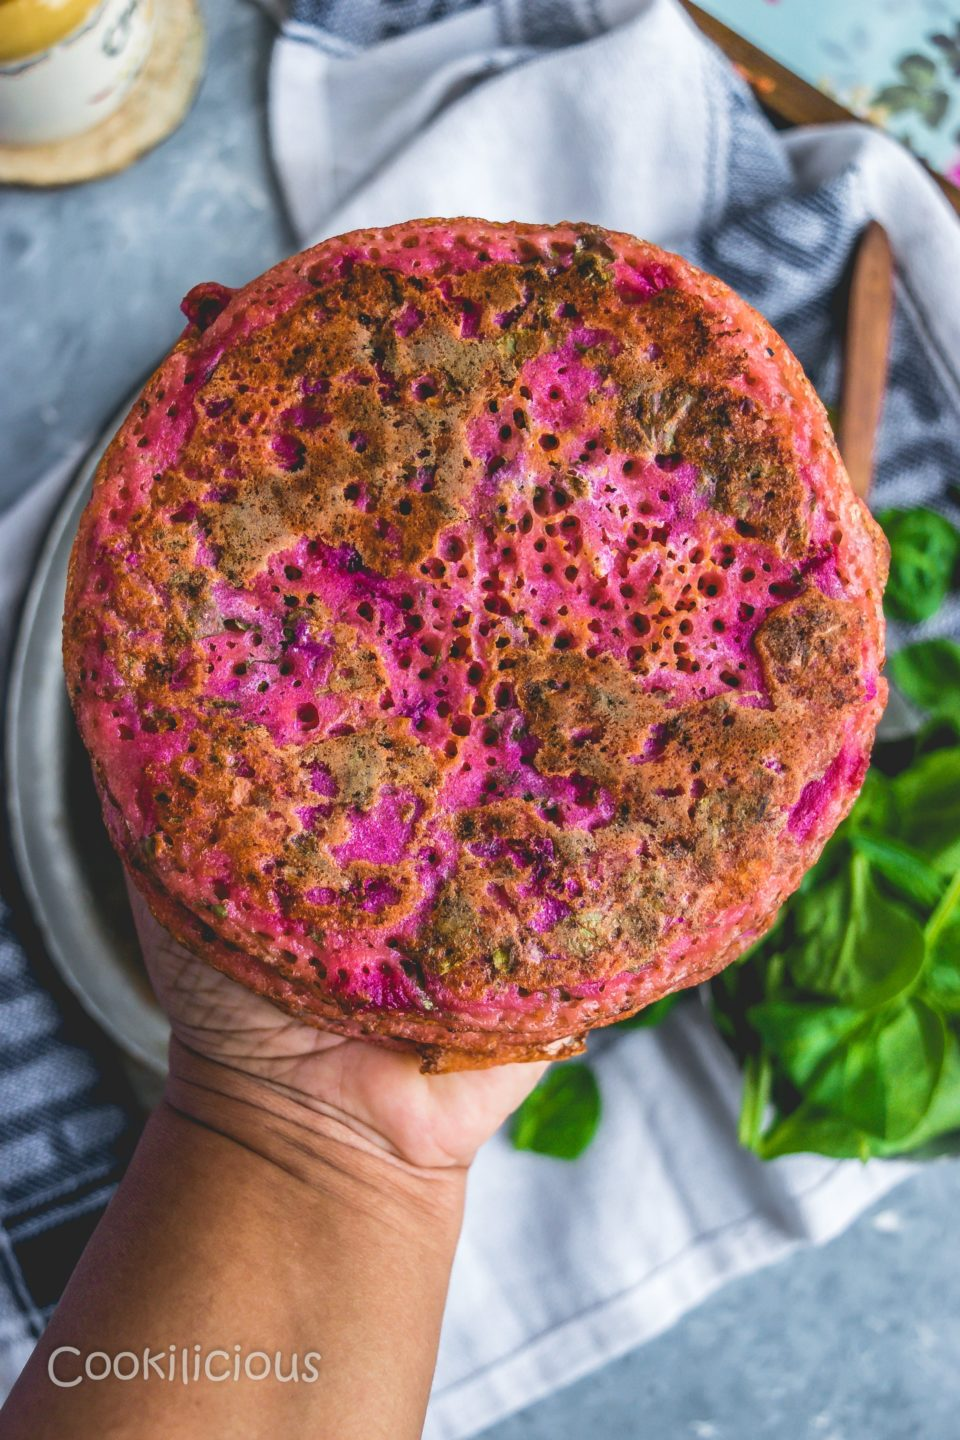 close up shot of a hand holding a Pink Uttapam with Beets & Veggies